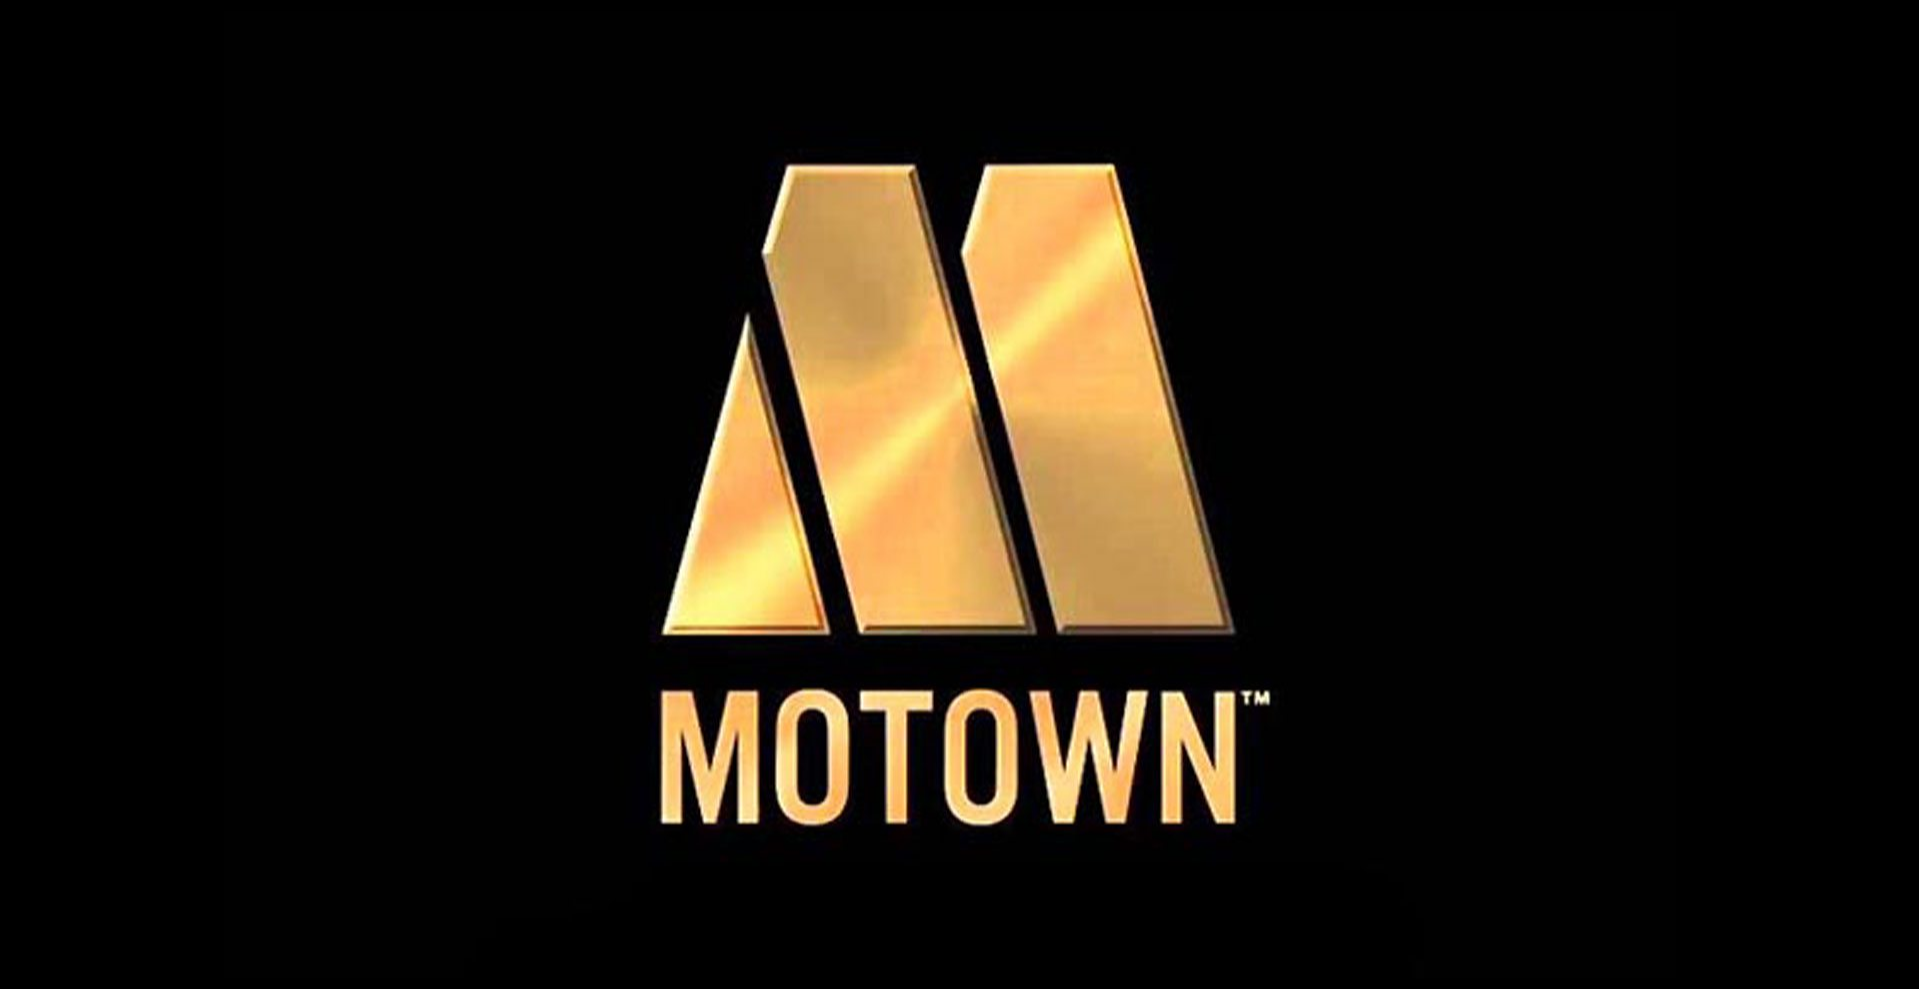 DJ - Soul - Motown - Dance - Chart - Wide range of entertainment to suit all tastes